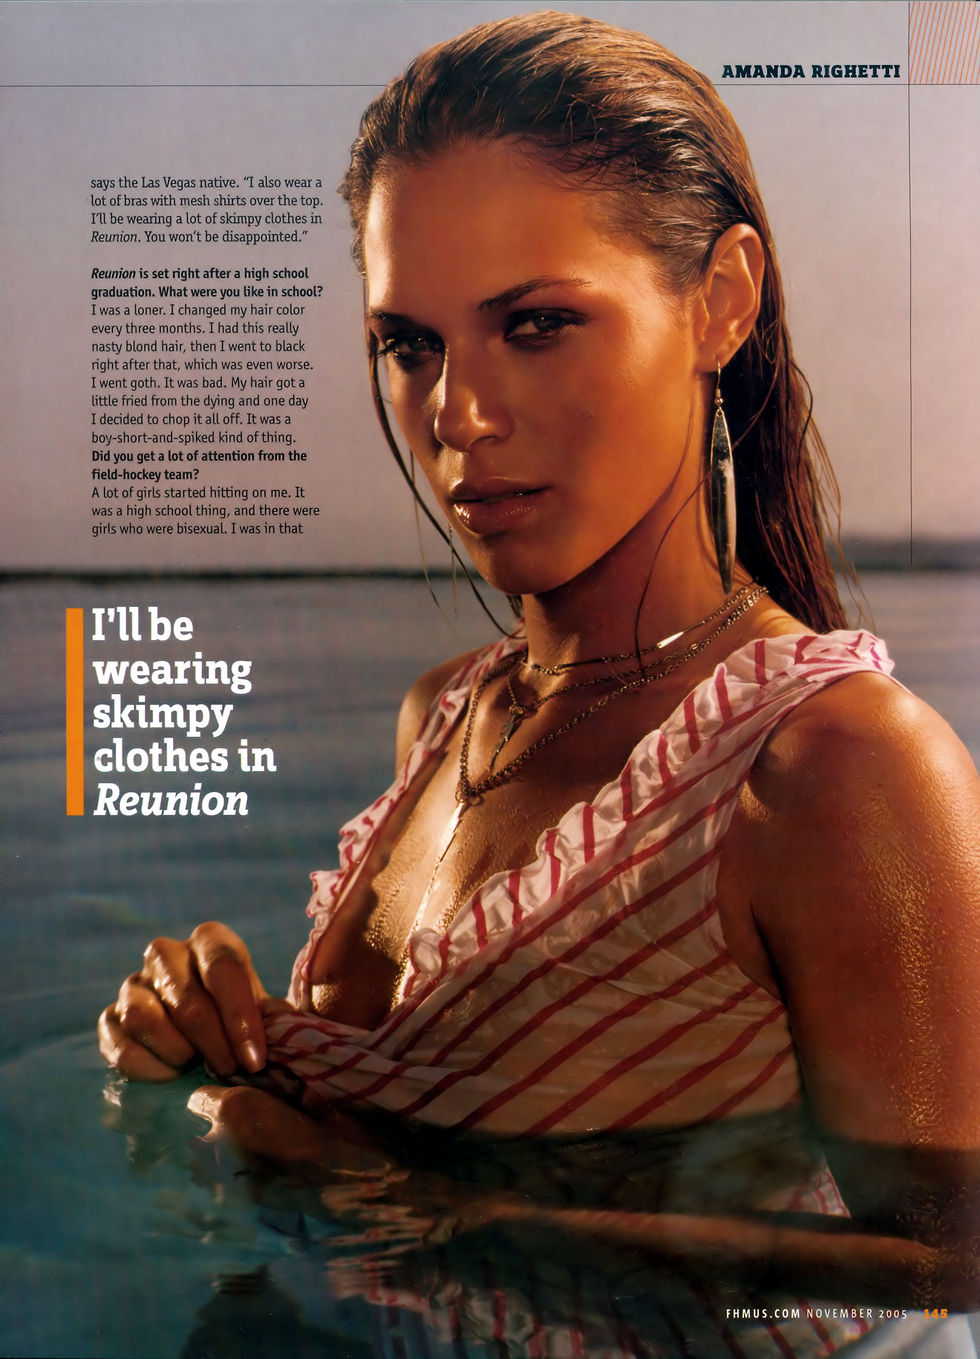 amanda-righetti-fhm-magazine-november-2005-01